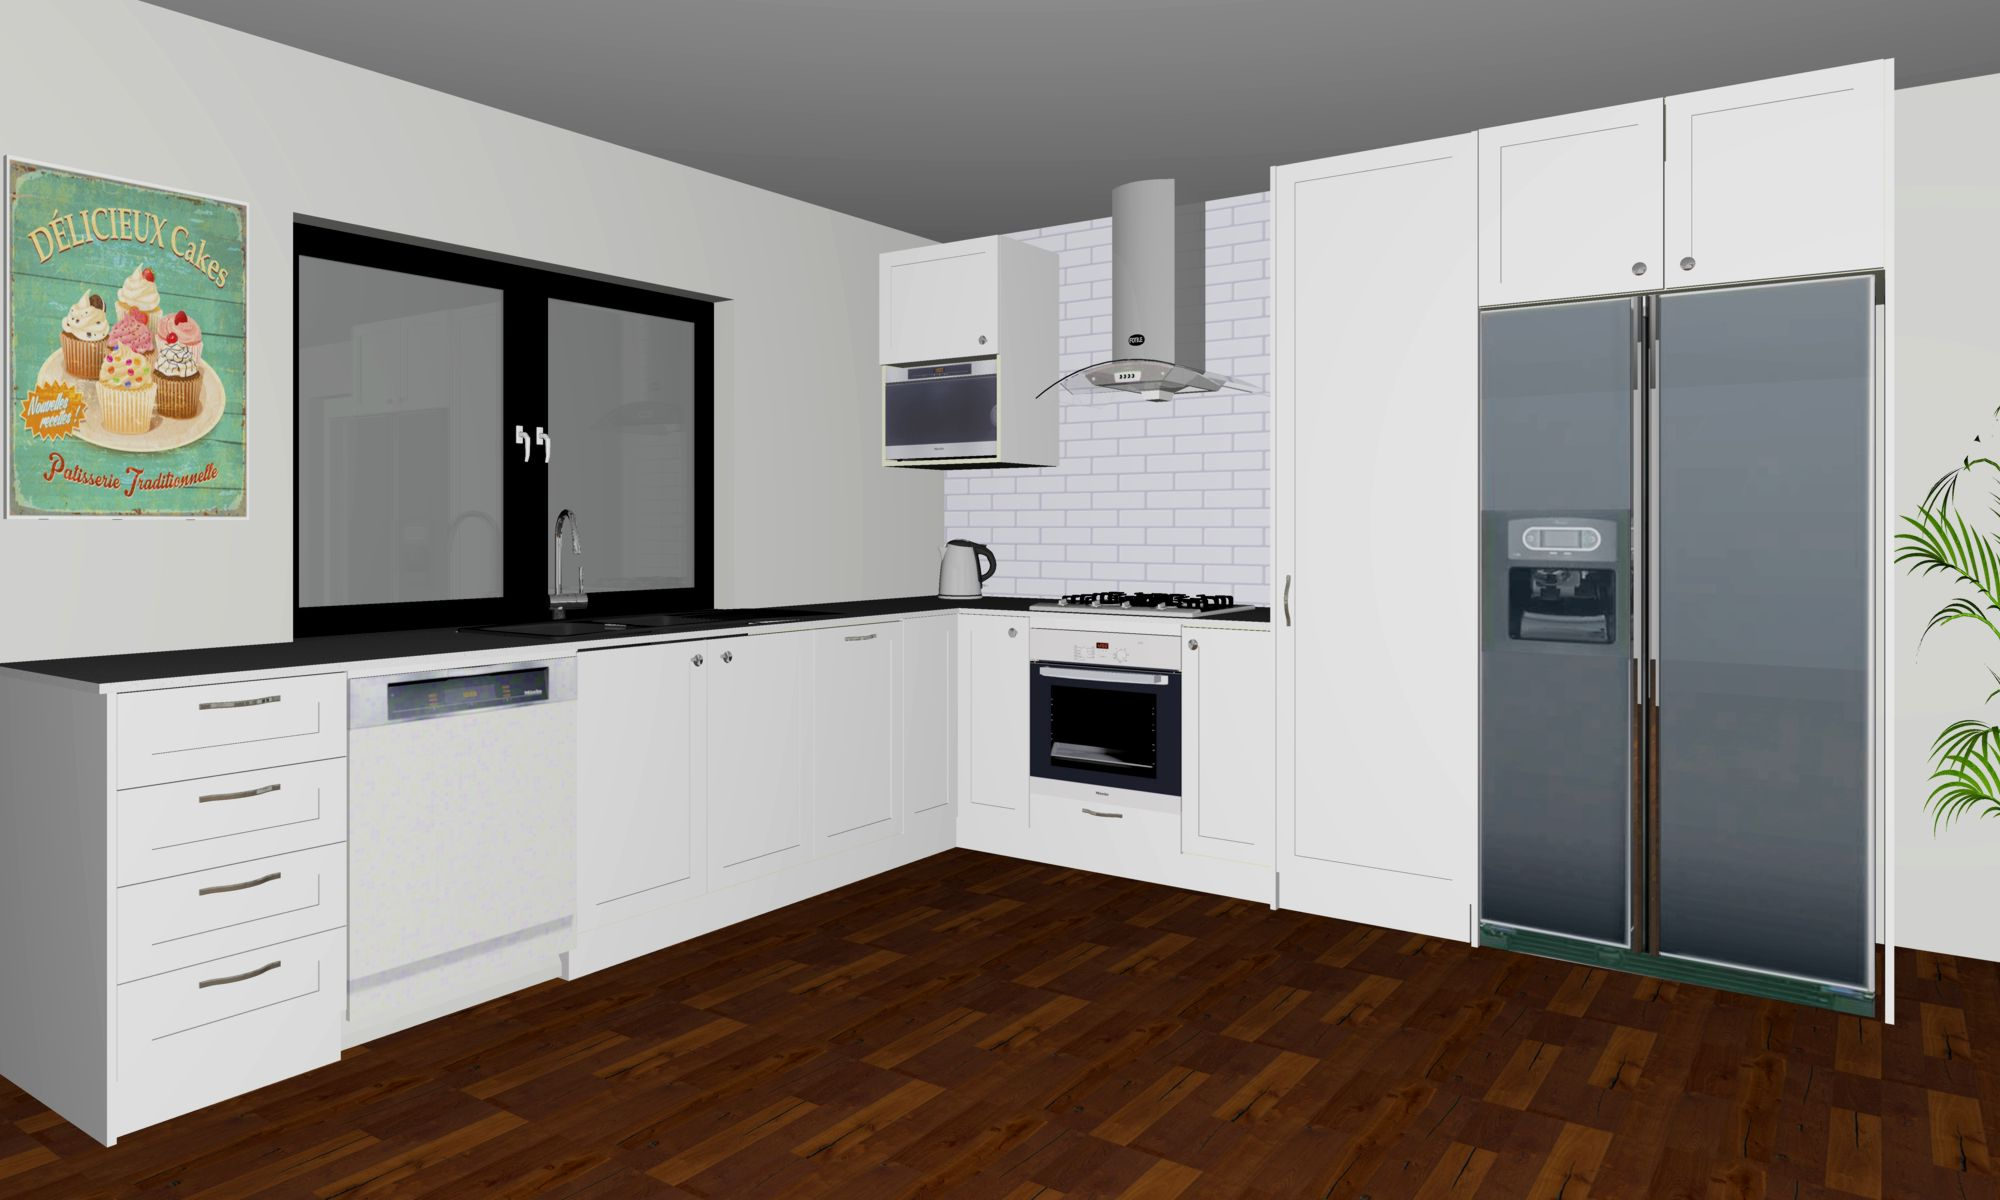 Funky Kitchens On Finance Crest - Home Design Ideas and Inspiration ...